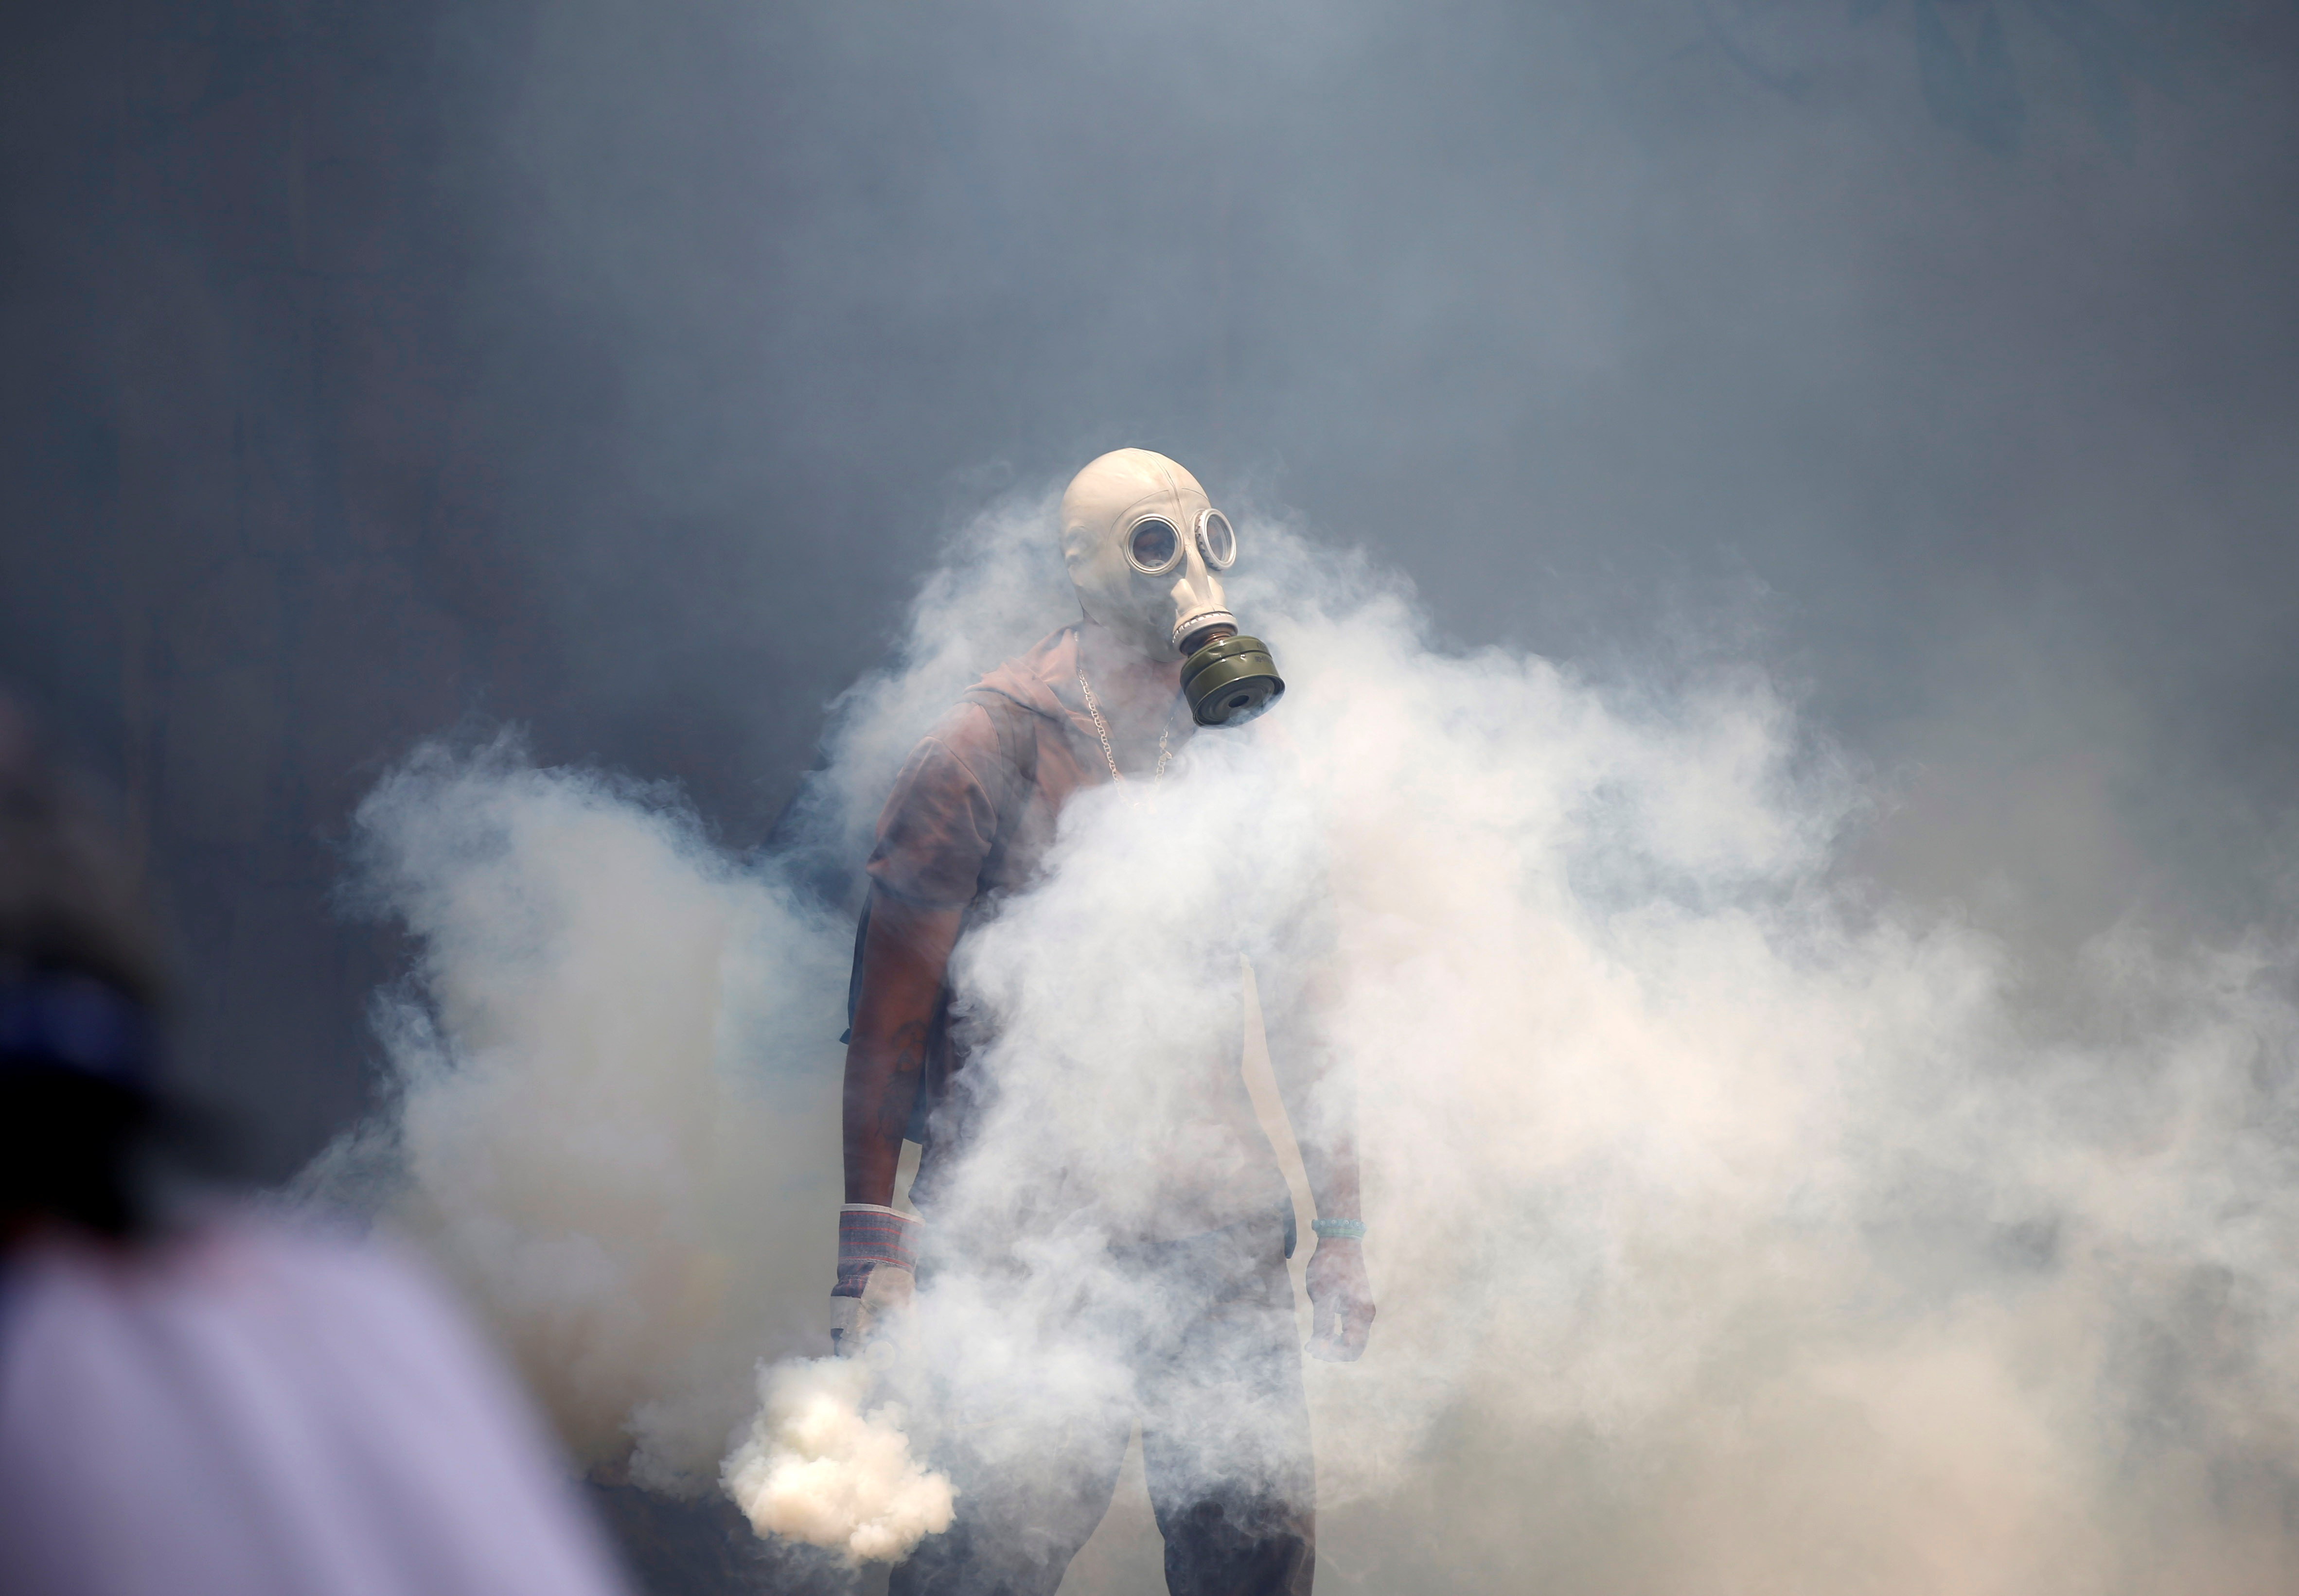 """A demonstrator clashes with riot police during the so-called """"mother of all marches"""" against Venezuela's President Nicolas Maduro in Caracas. (REUTERS/Carlos Garcia Rawlins)"""